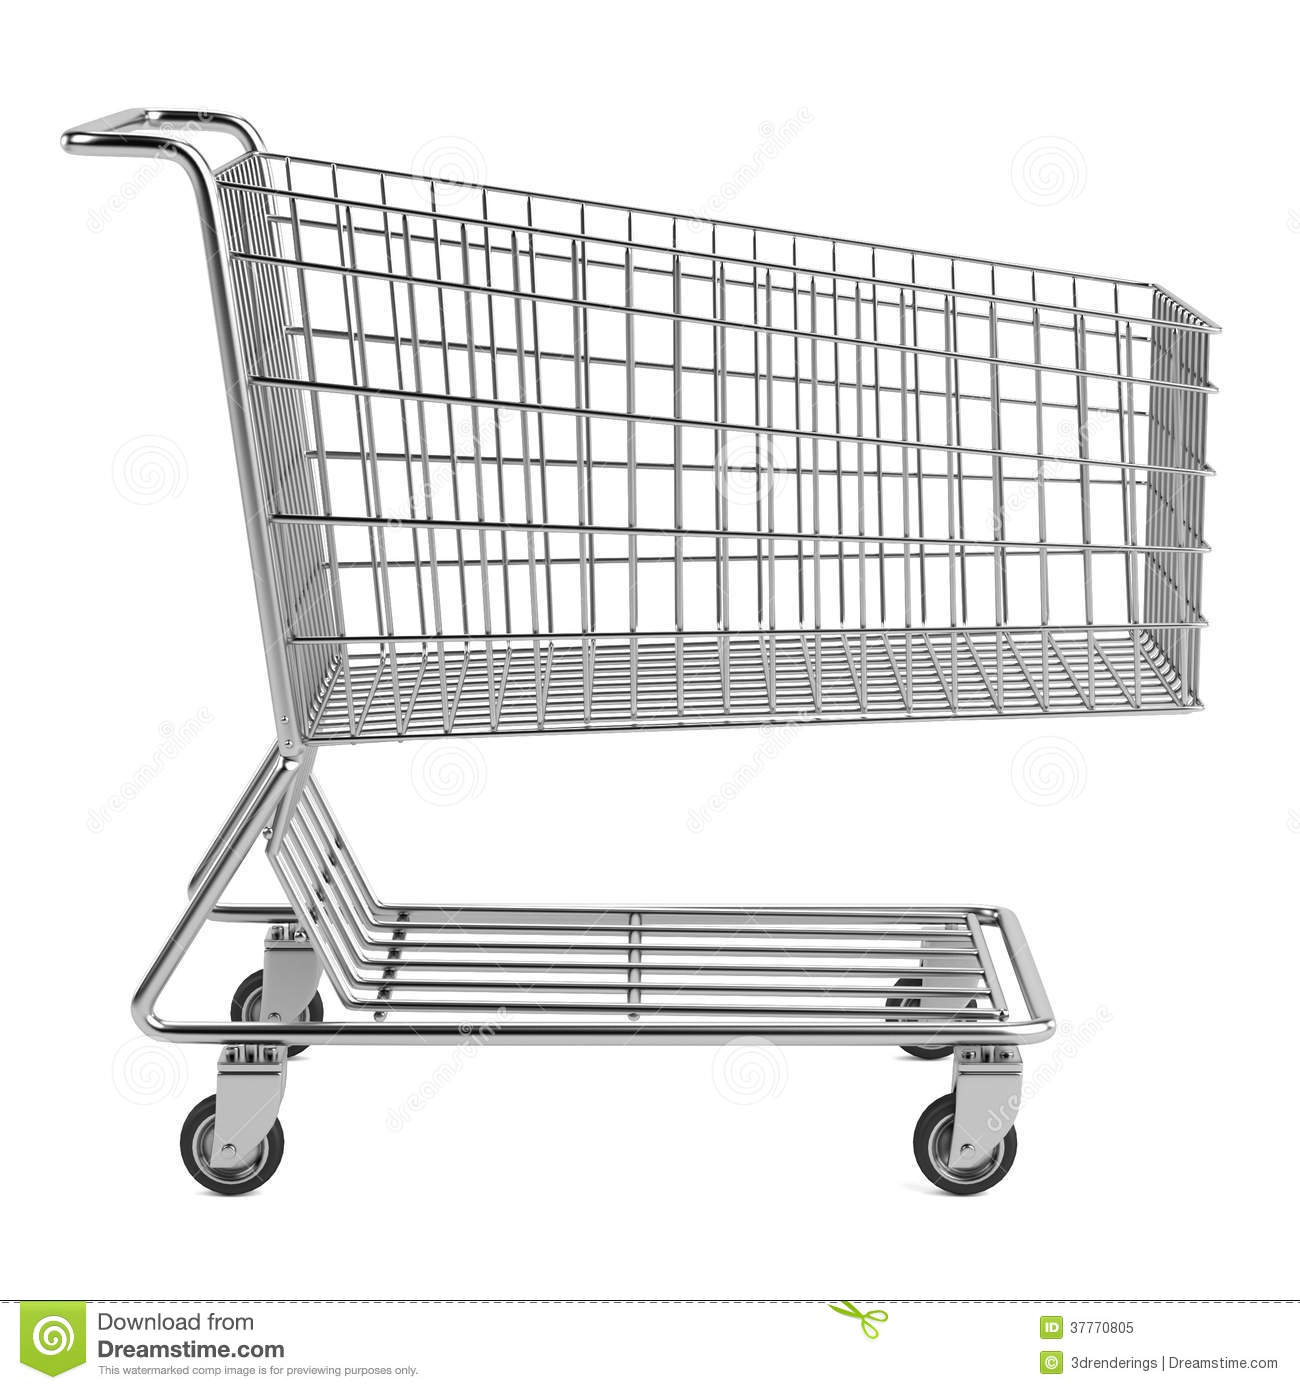 It is an image of Declarative Shopping Cart Drawing